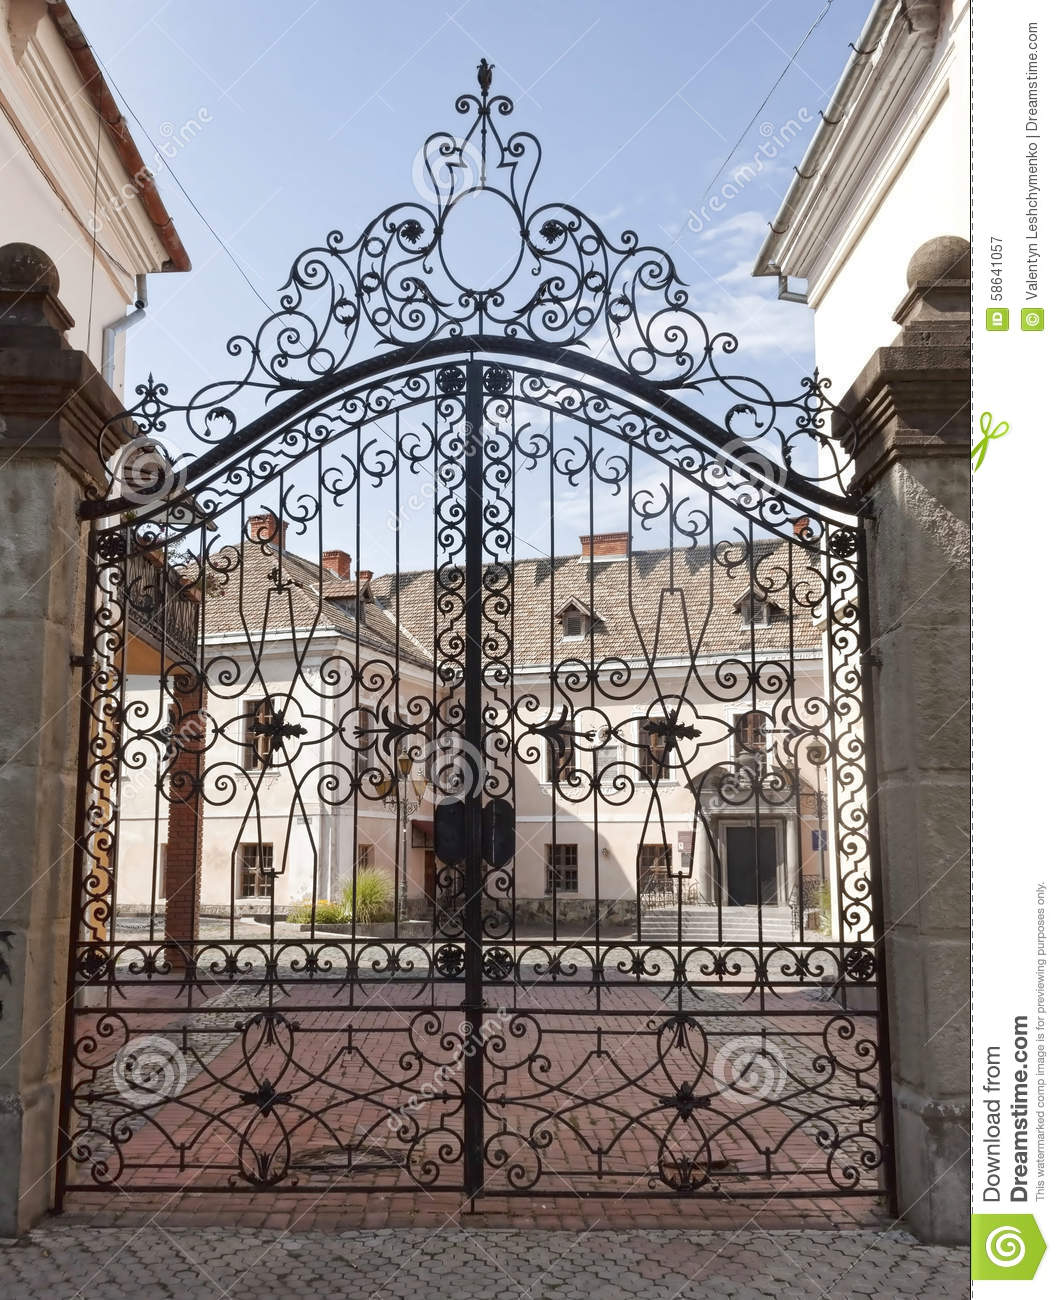 Metal Wrought Iron Gates Stock Image Image Of Ornate